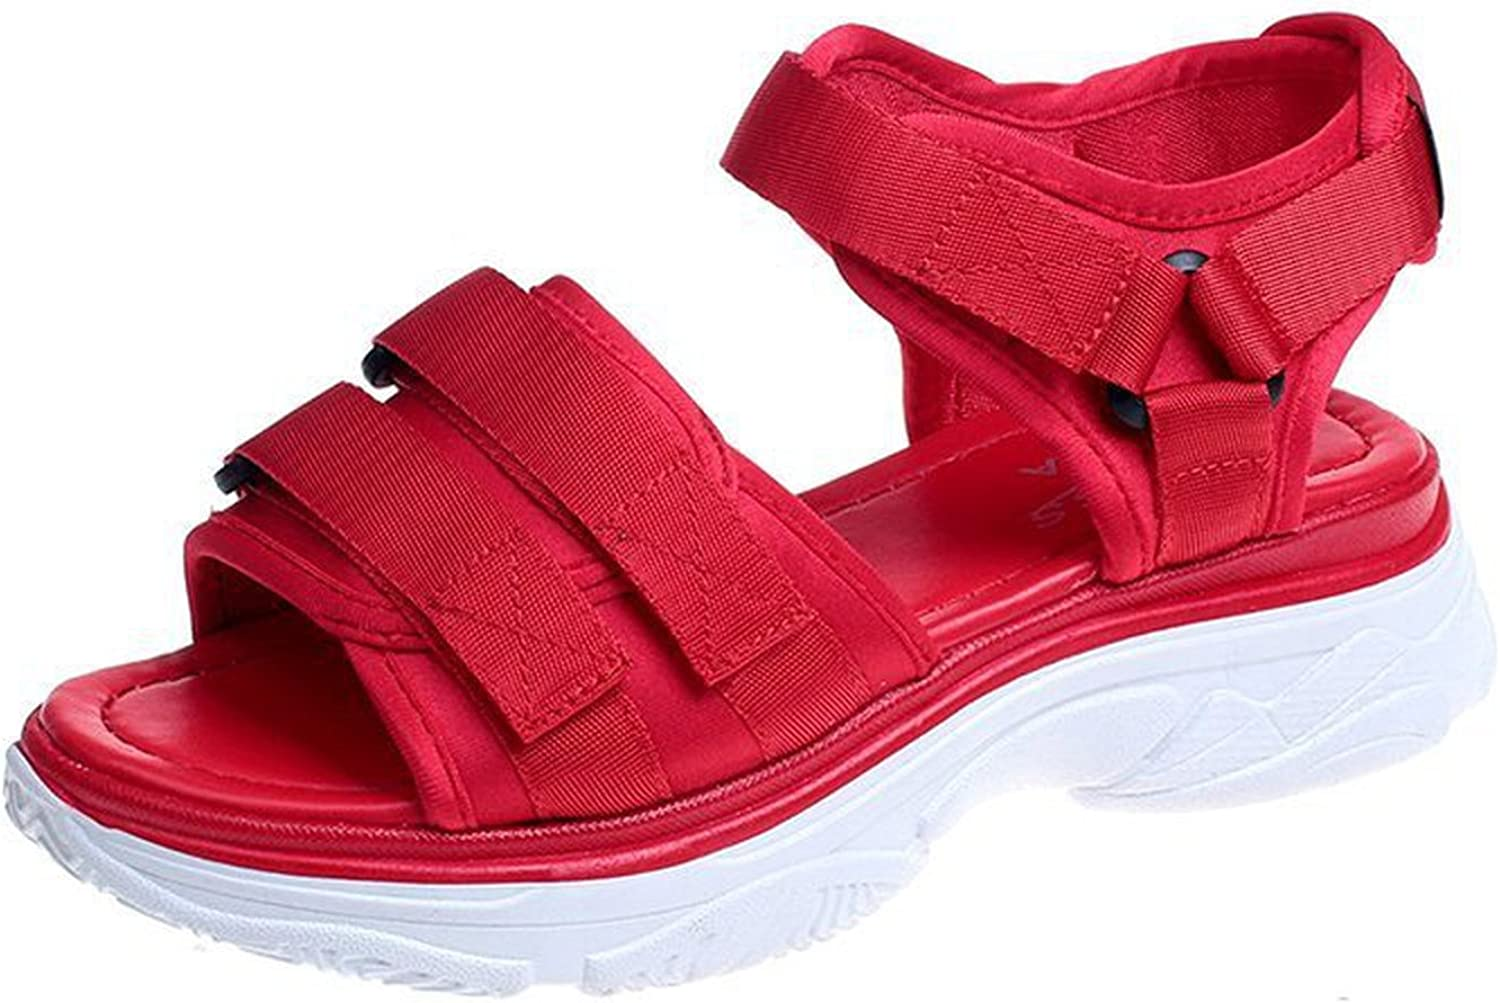 Luck Man Summer Shoes for Women Platform Flat Sandals Lady Cool Shoes Casual Leisure Beach Footwear Sandalias Mujer Red